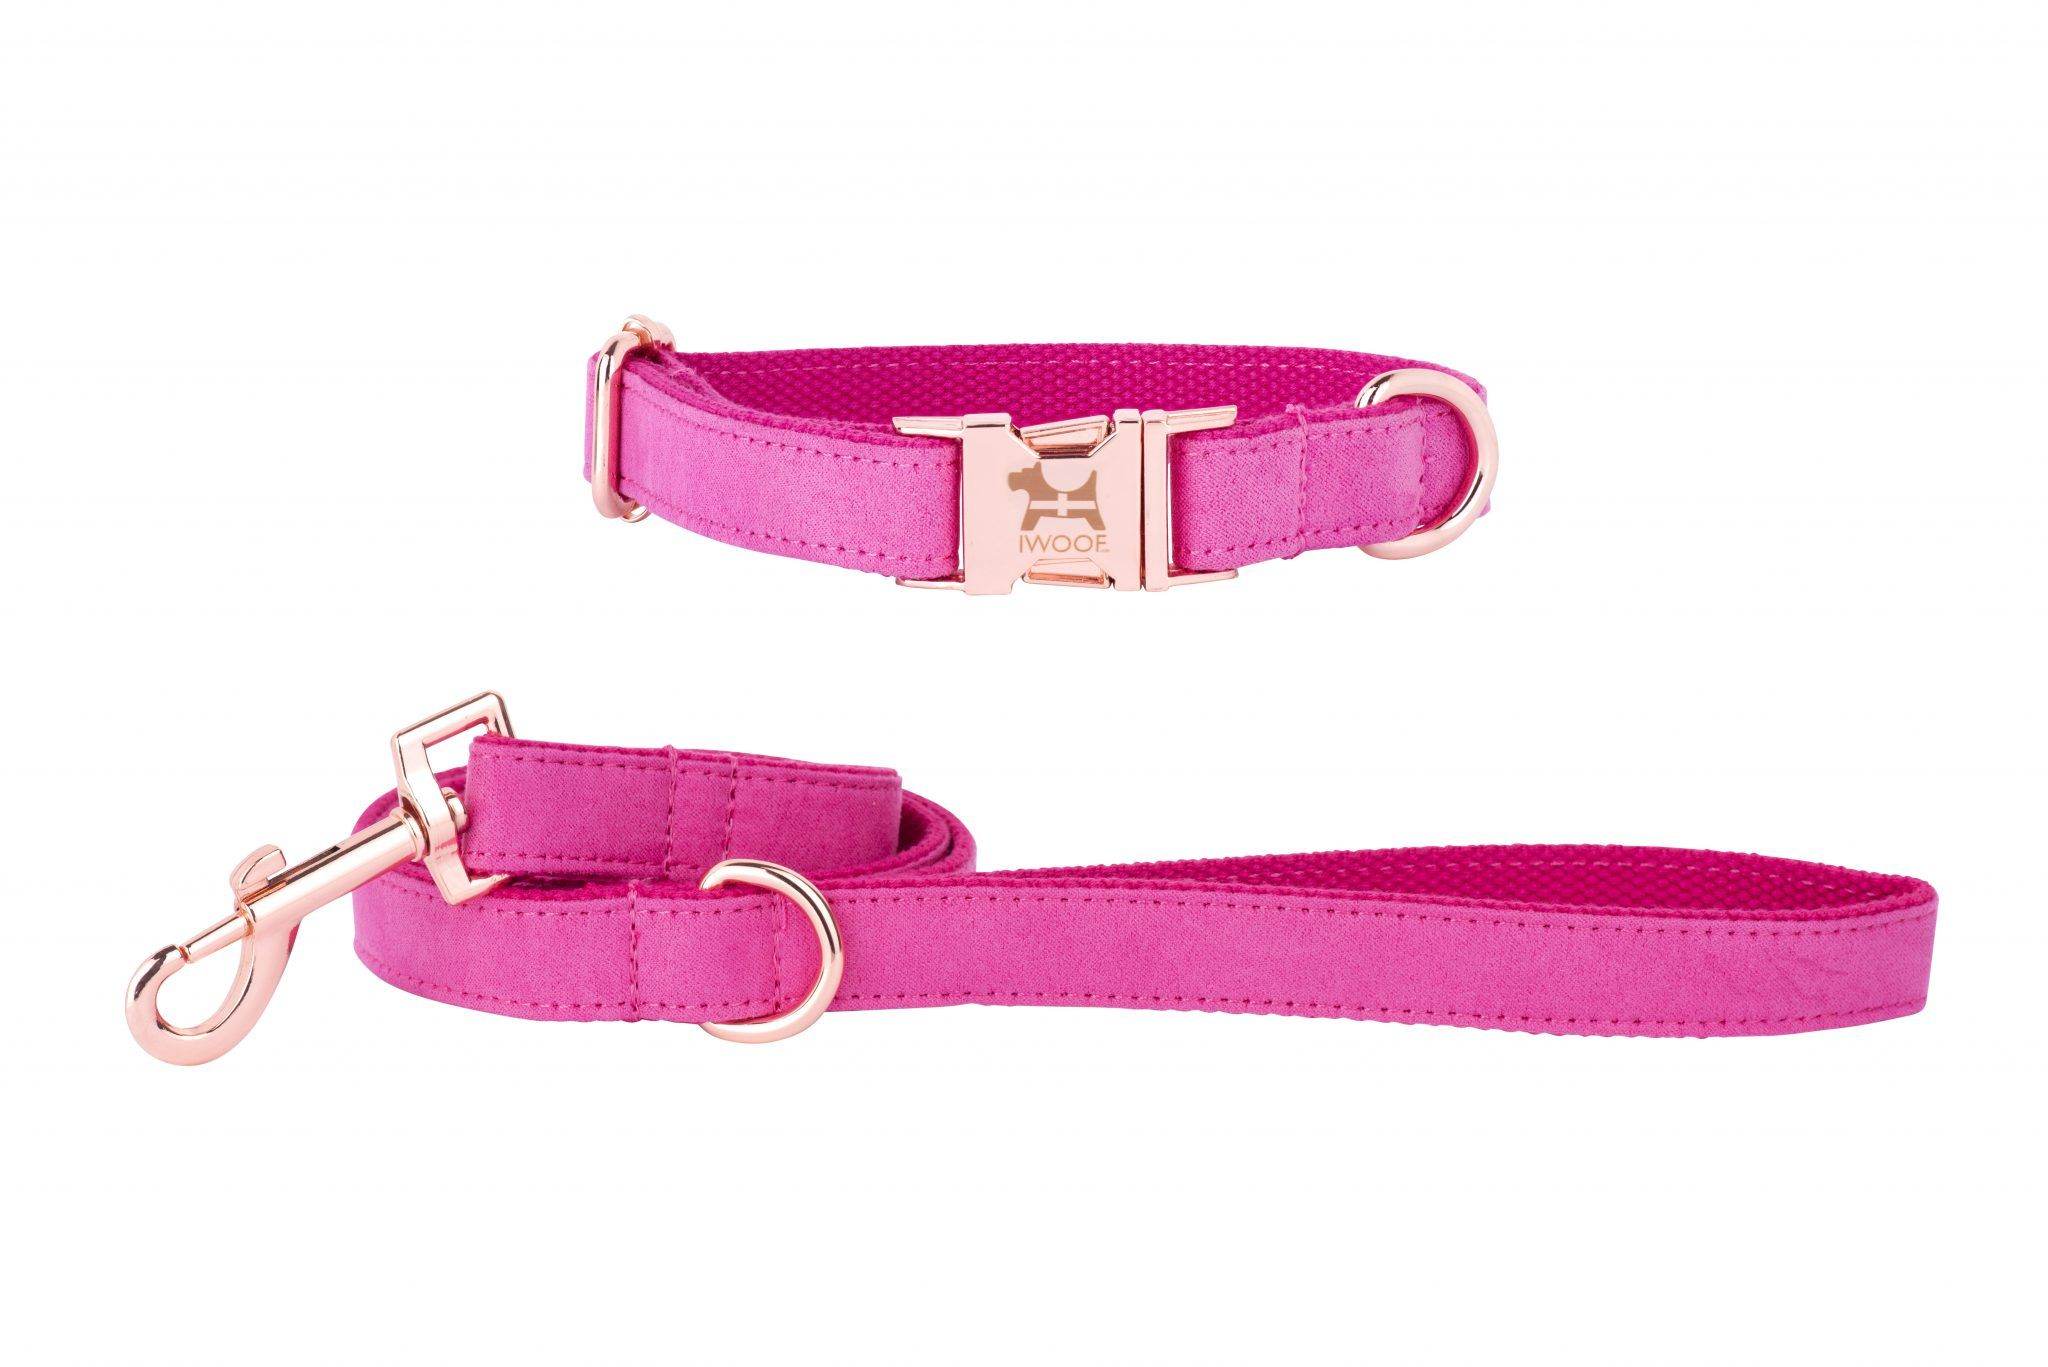 PINK CORNWALL Designer Dog Collar and Lead set in Rose